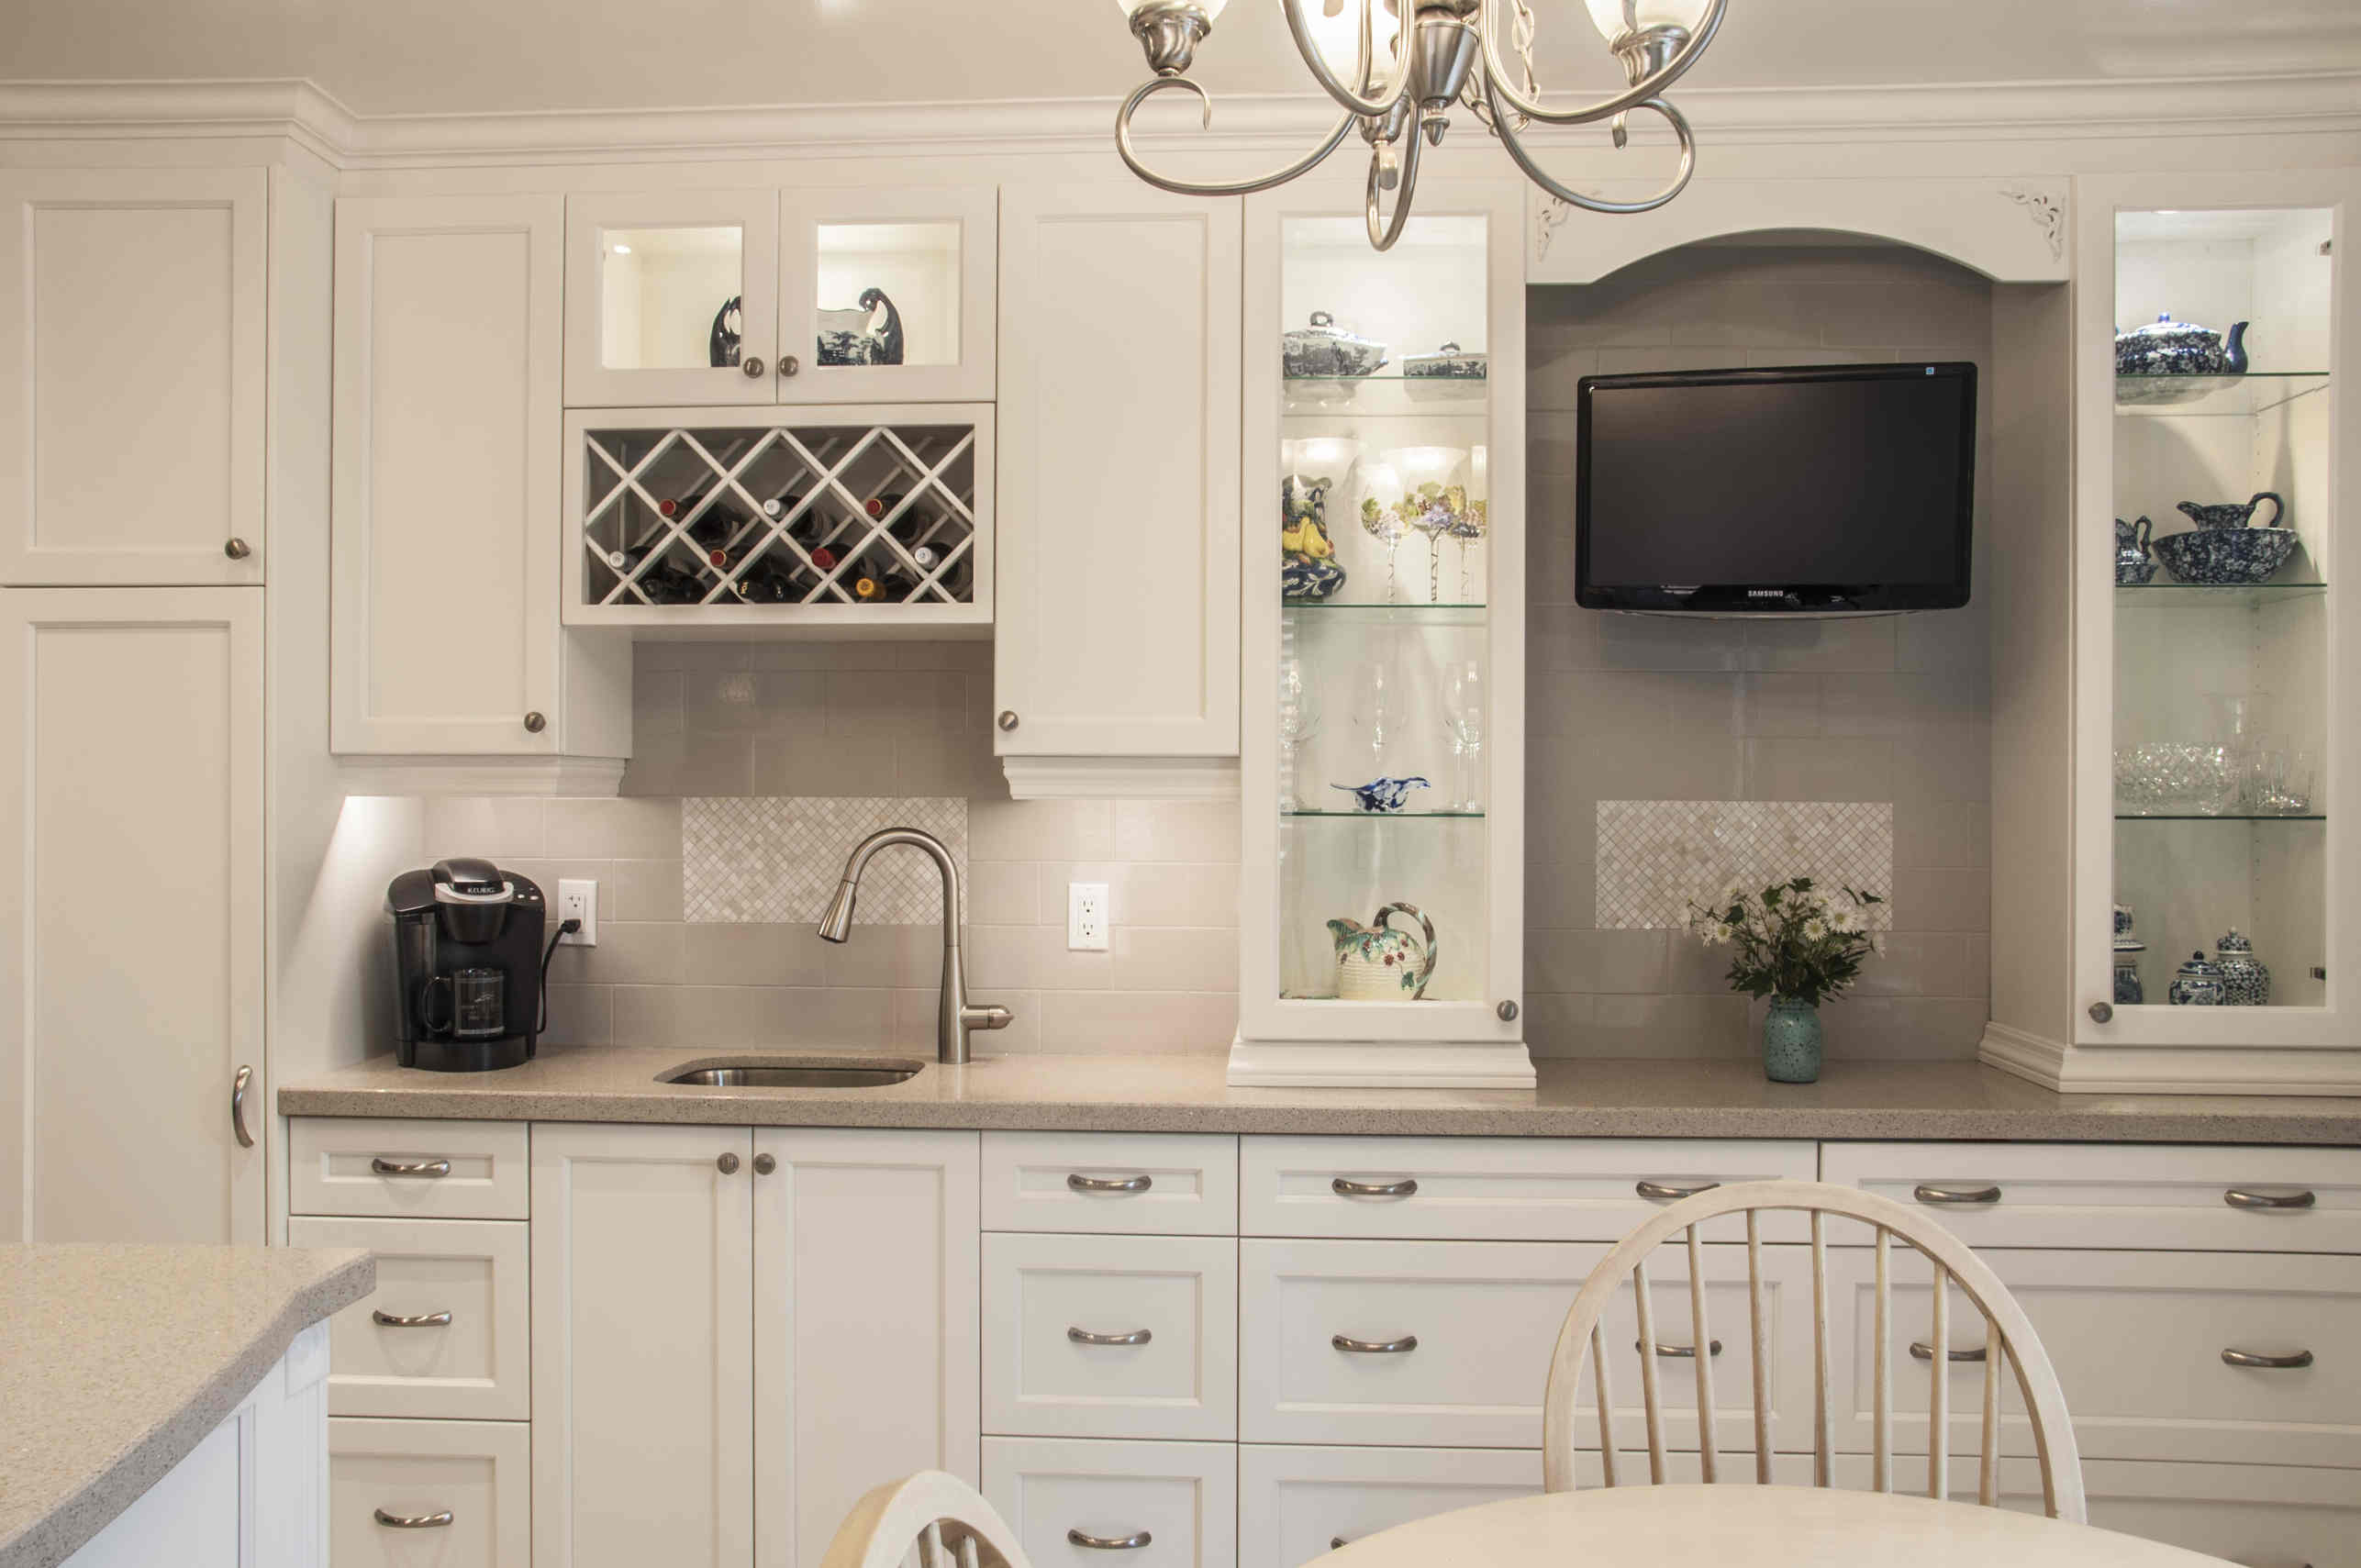 Custom Kitchen Cabinets Mississauga Kitchen Cabinets Flooring And Paint Easy Way To Revamp Kitchen